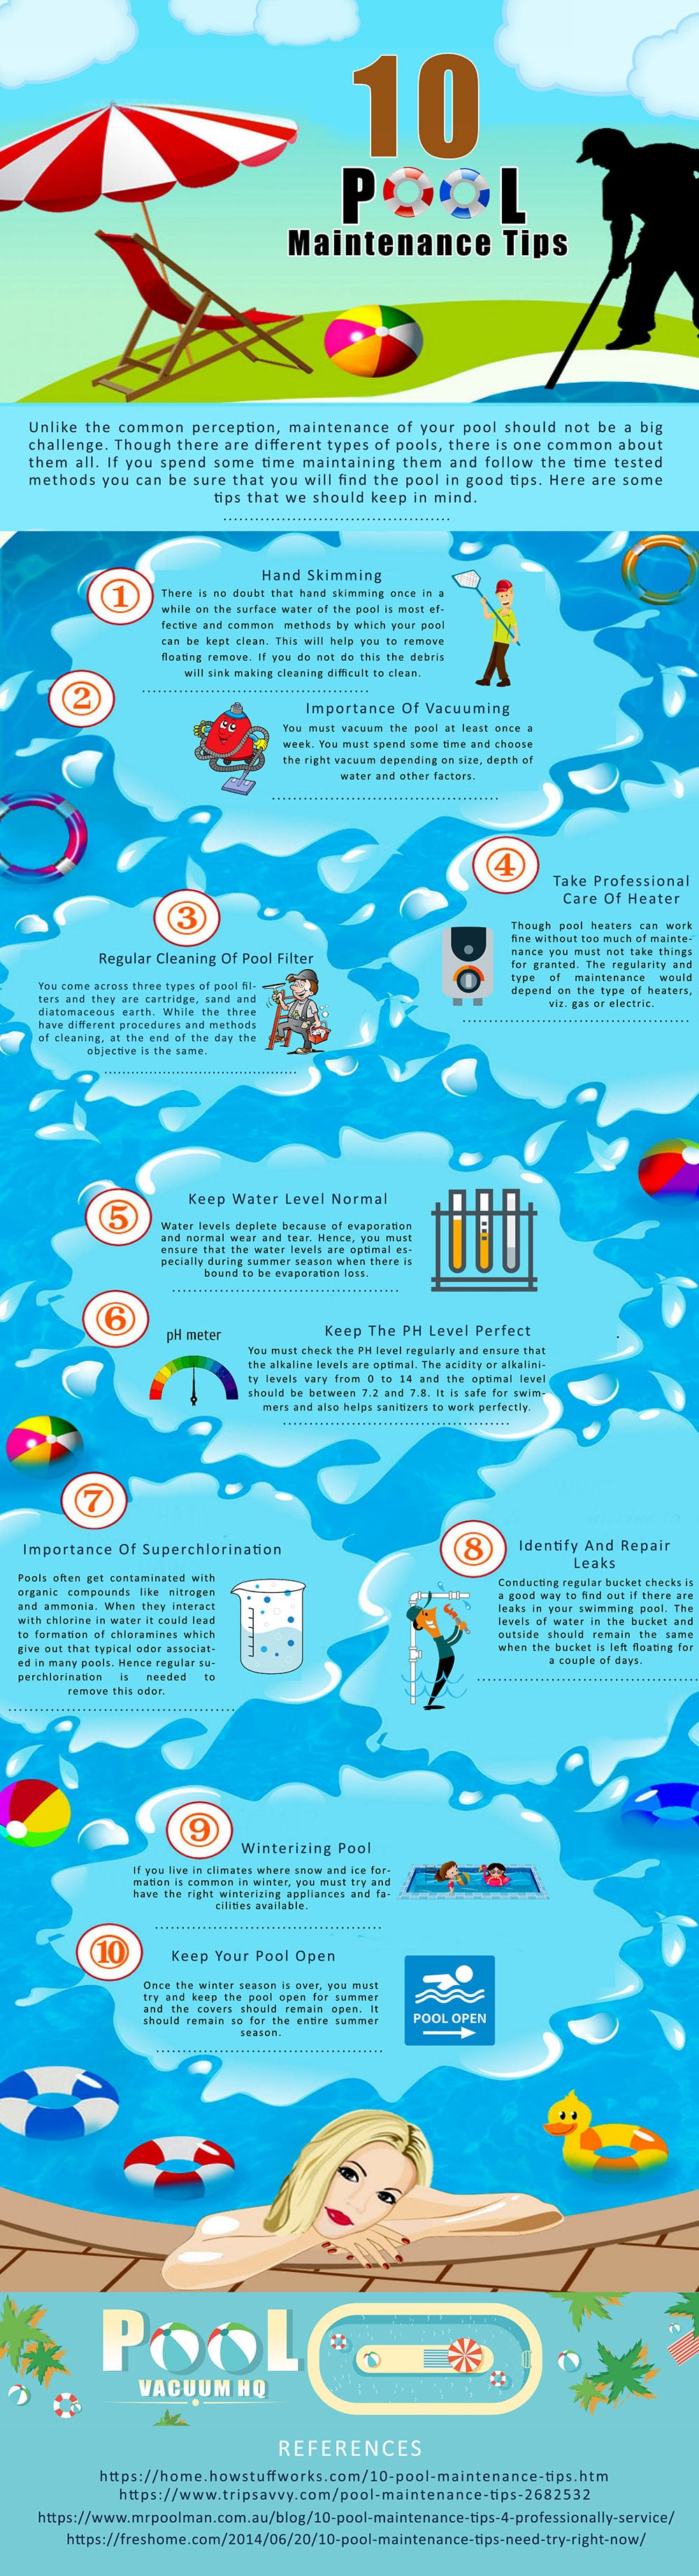 10 Cost Effective Pool Maintenance Tips